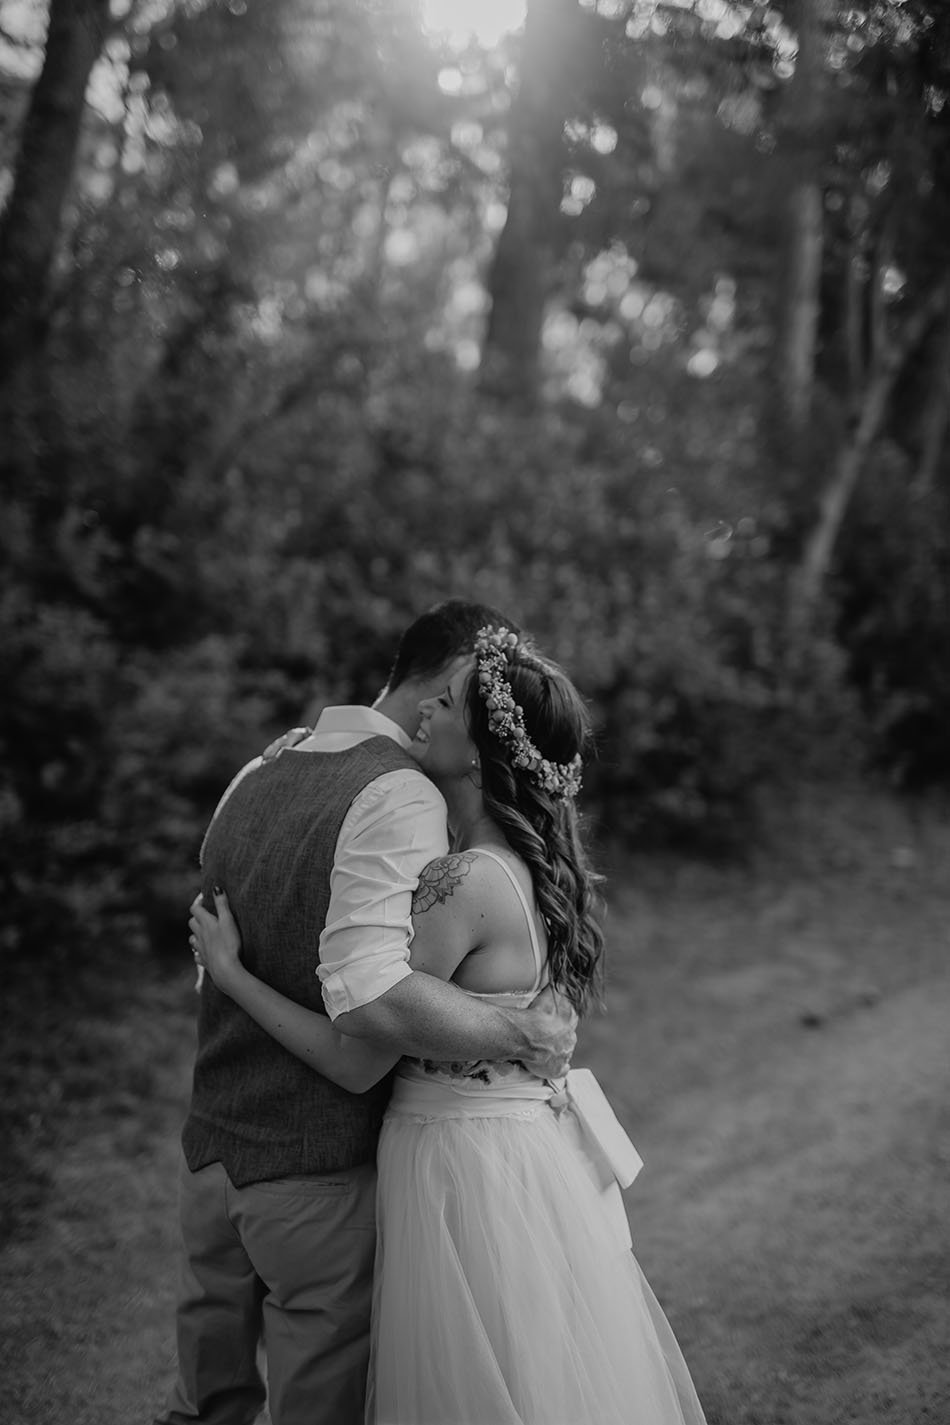 Signal Hill Wedding - Cape Town Wedding Photographer - Duane Smith Photography - Natalie & Jandre-58